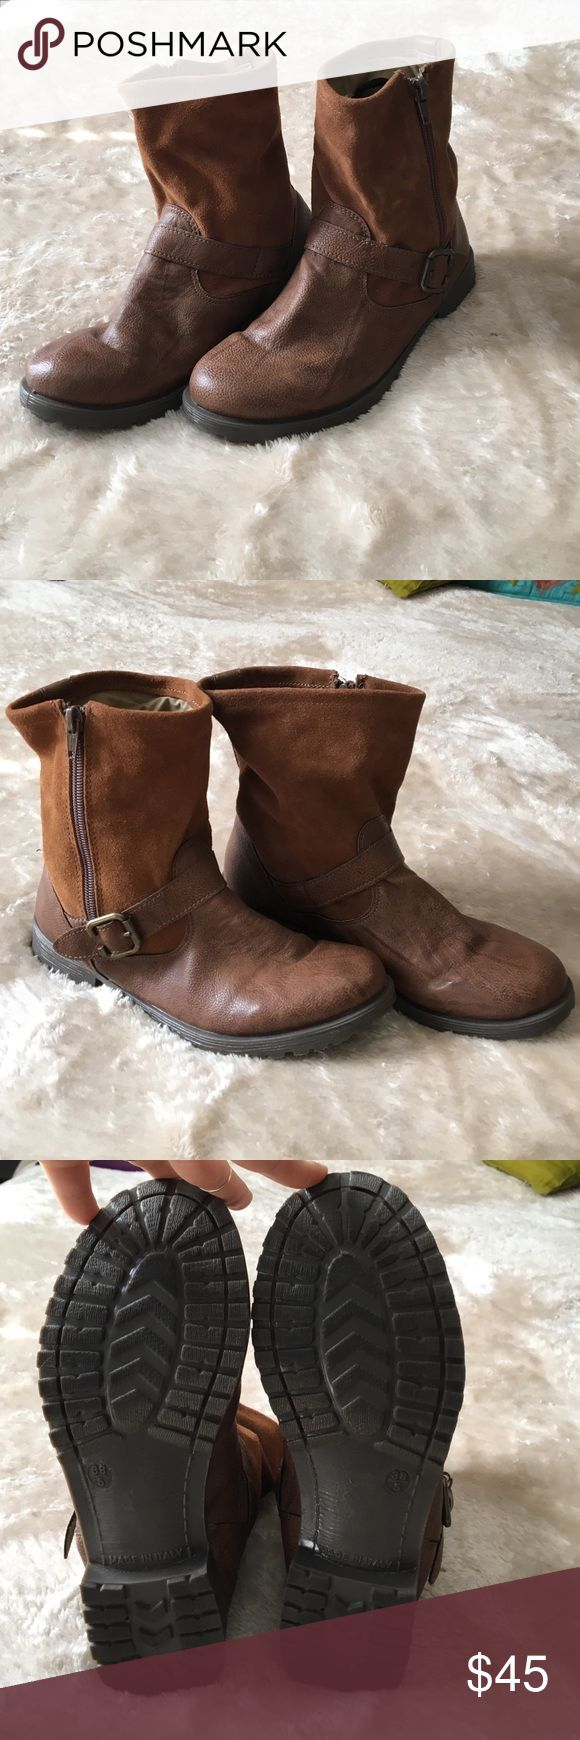 Slouchy brown boots Slouchy brown short boots I got in Europe. They were worn once or twice. Size 38 and made in Italy. Miss selfrige  Shoes Ankle Boots & Booties